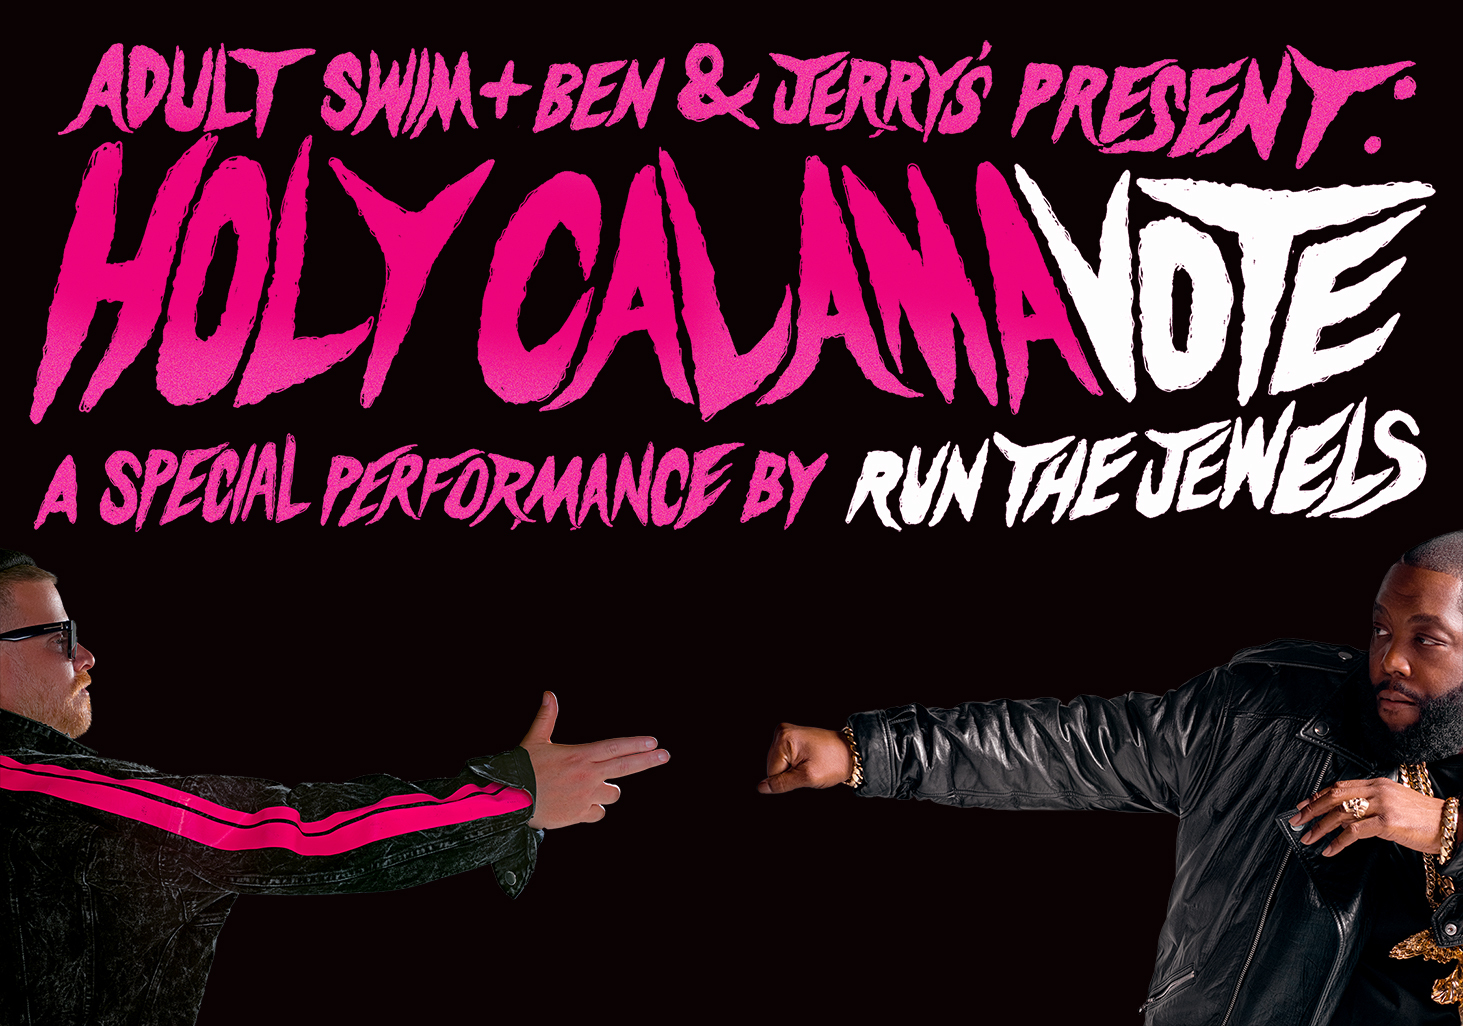 Adult Swim + Ben & Jerry's present: Holy Calamavote - A special performance by Run The Jewels